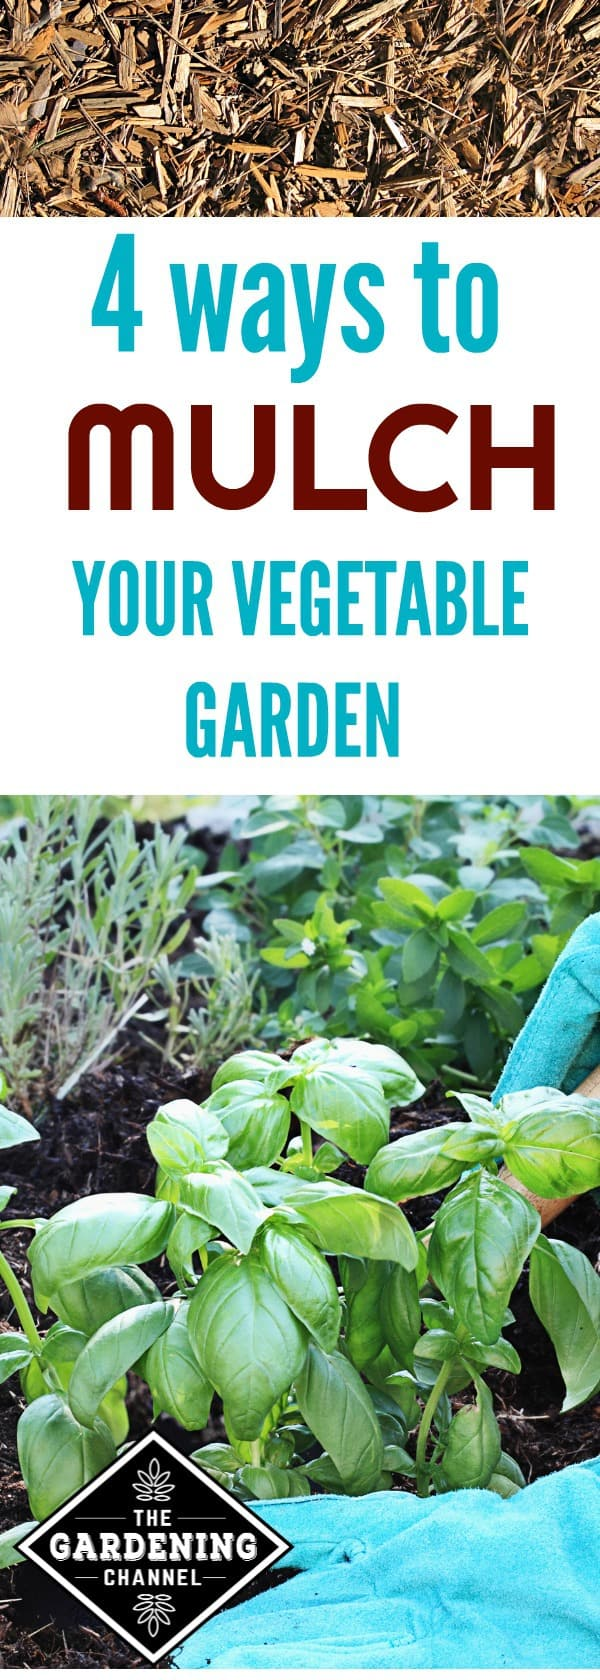 4 Ways To Mulch Your Vegetable Garden